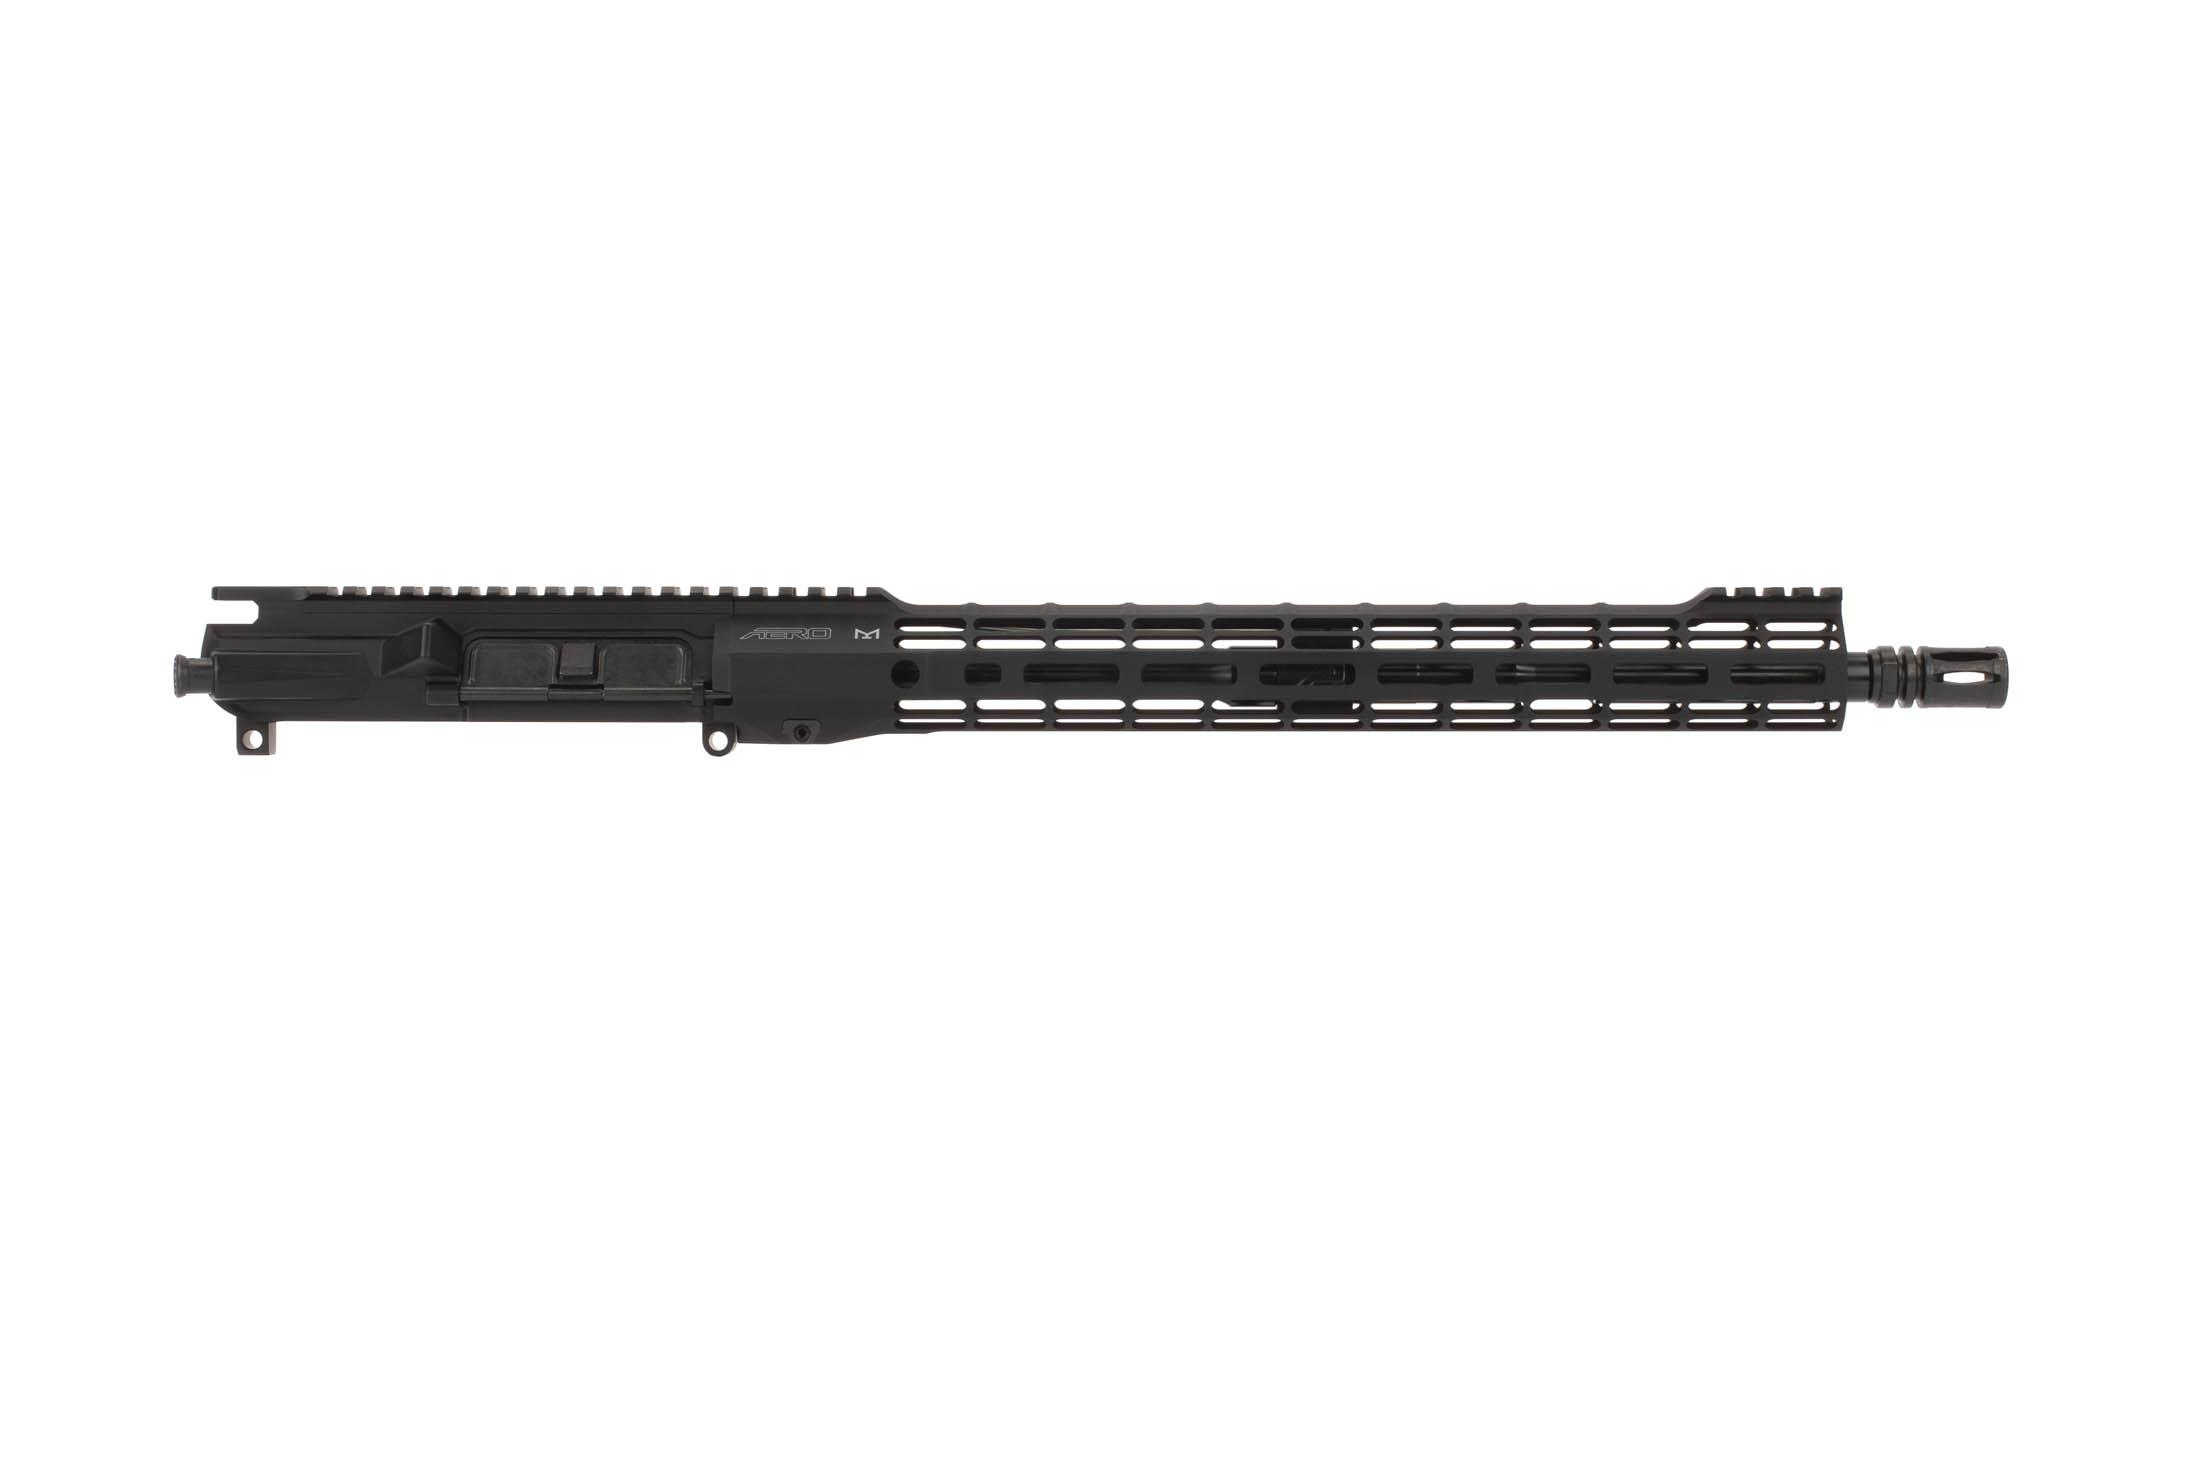 Aero Precision 16in AR-15 Enhanced M4E1 barreled upper receiver with 15in ATLAS S-ONE M-LOK rail